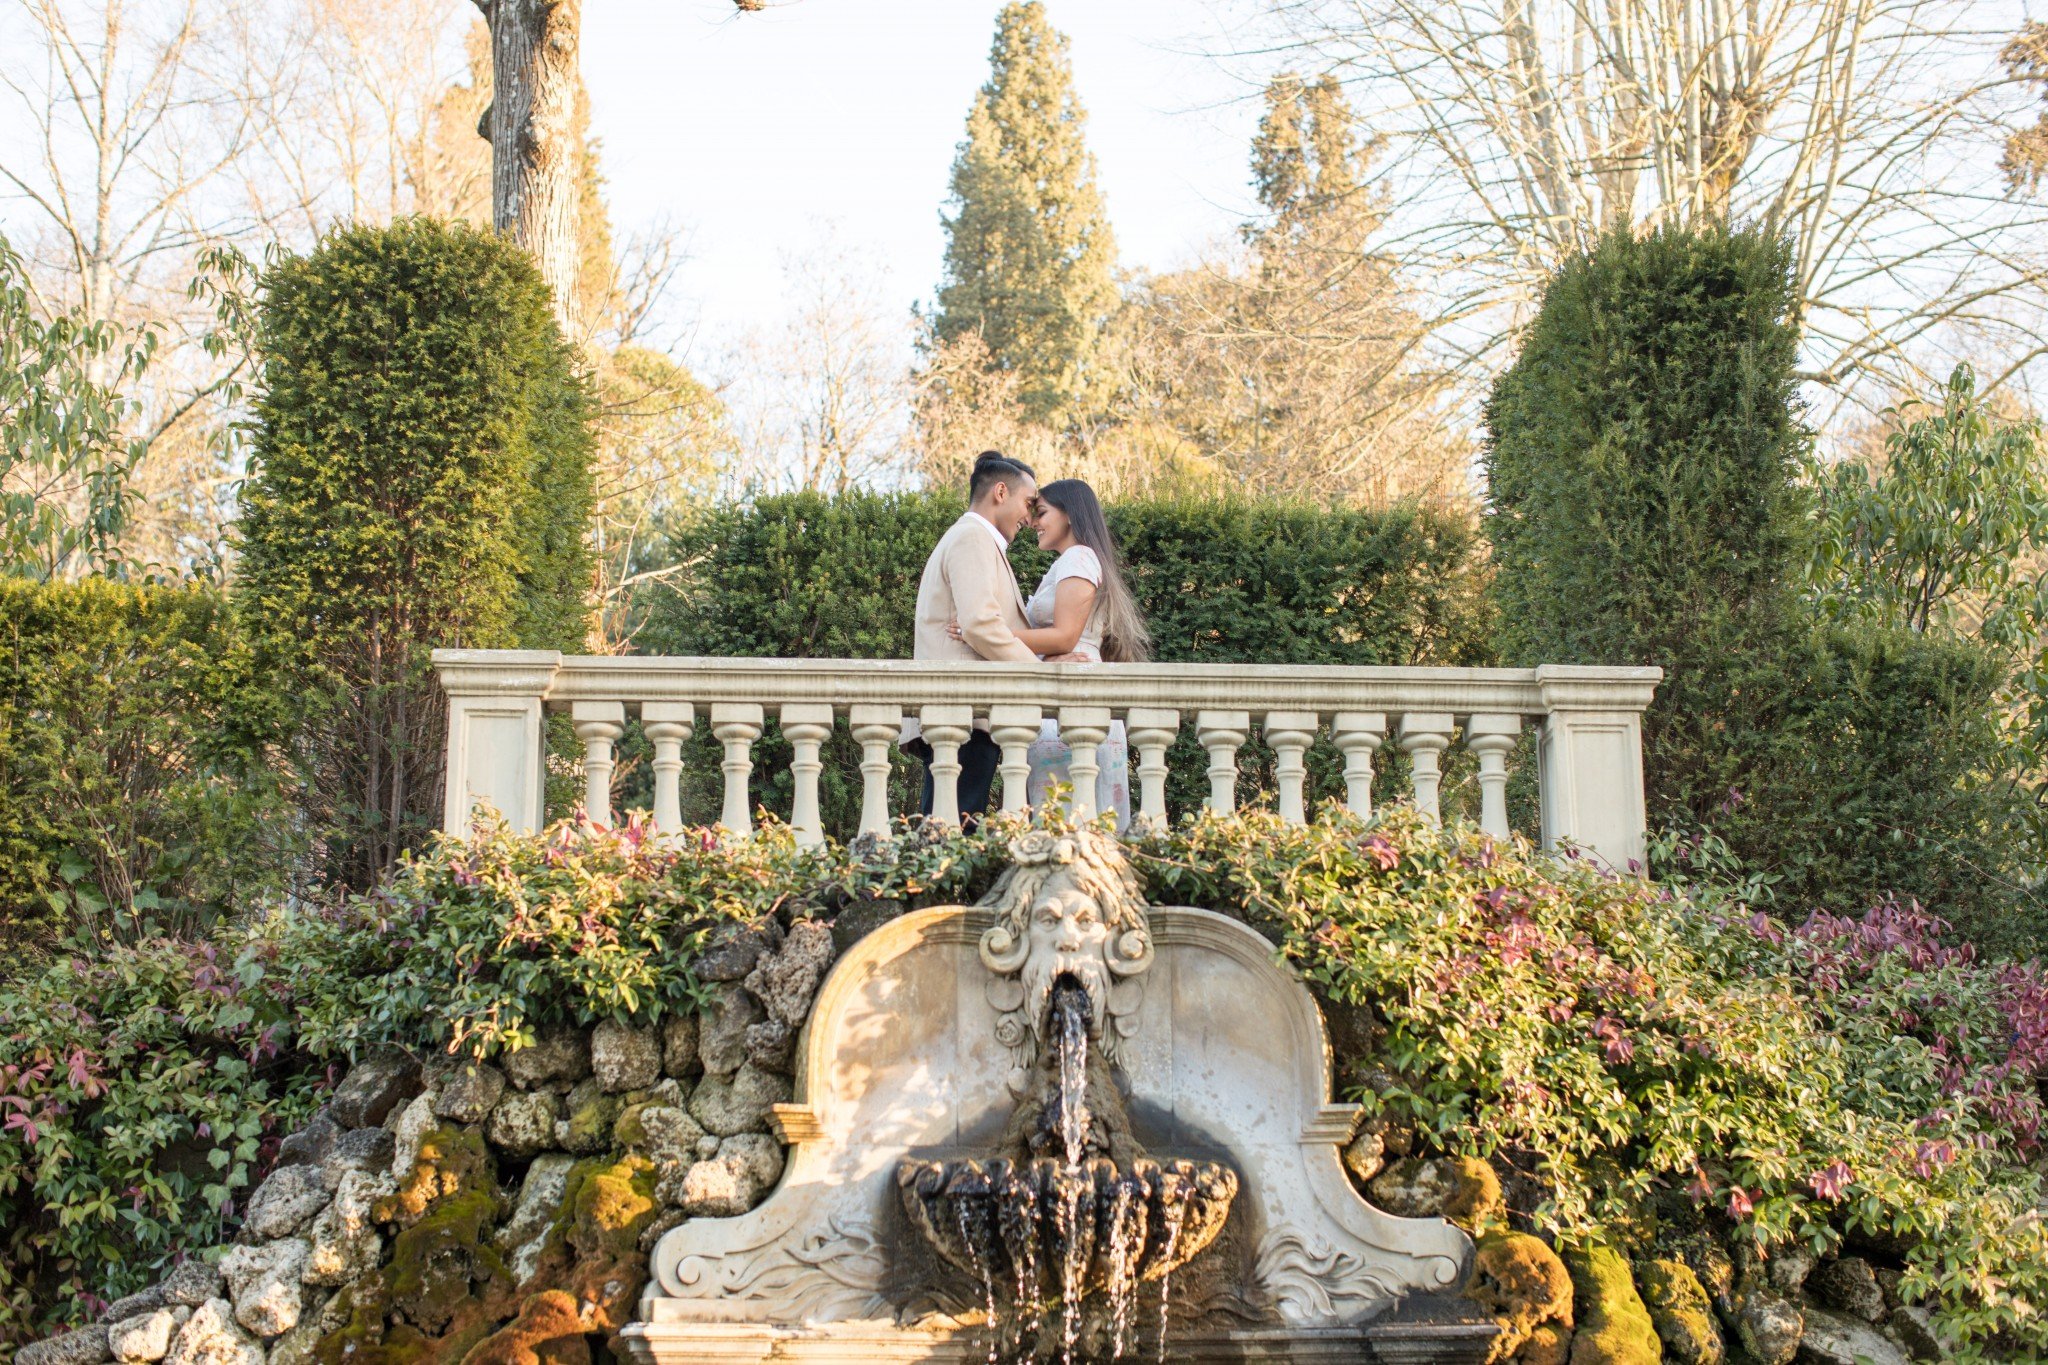 Engagement photo shoot Italy